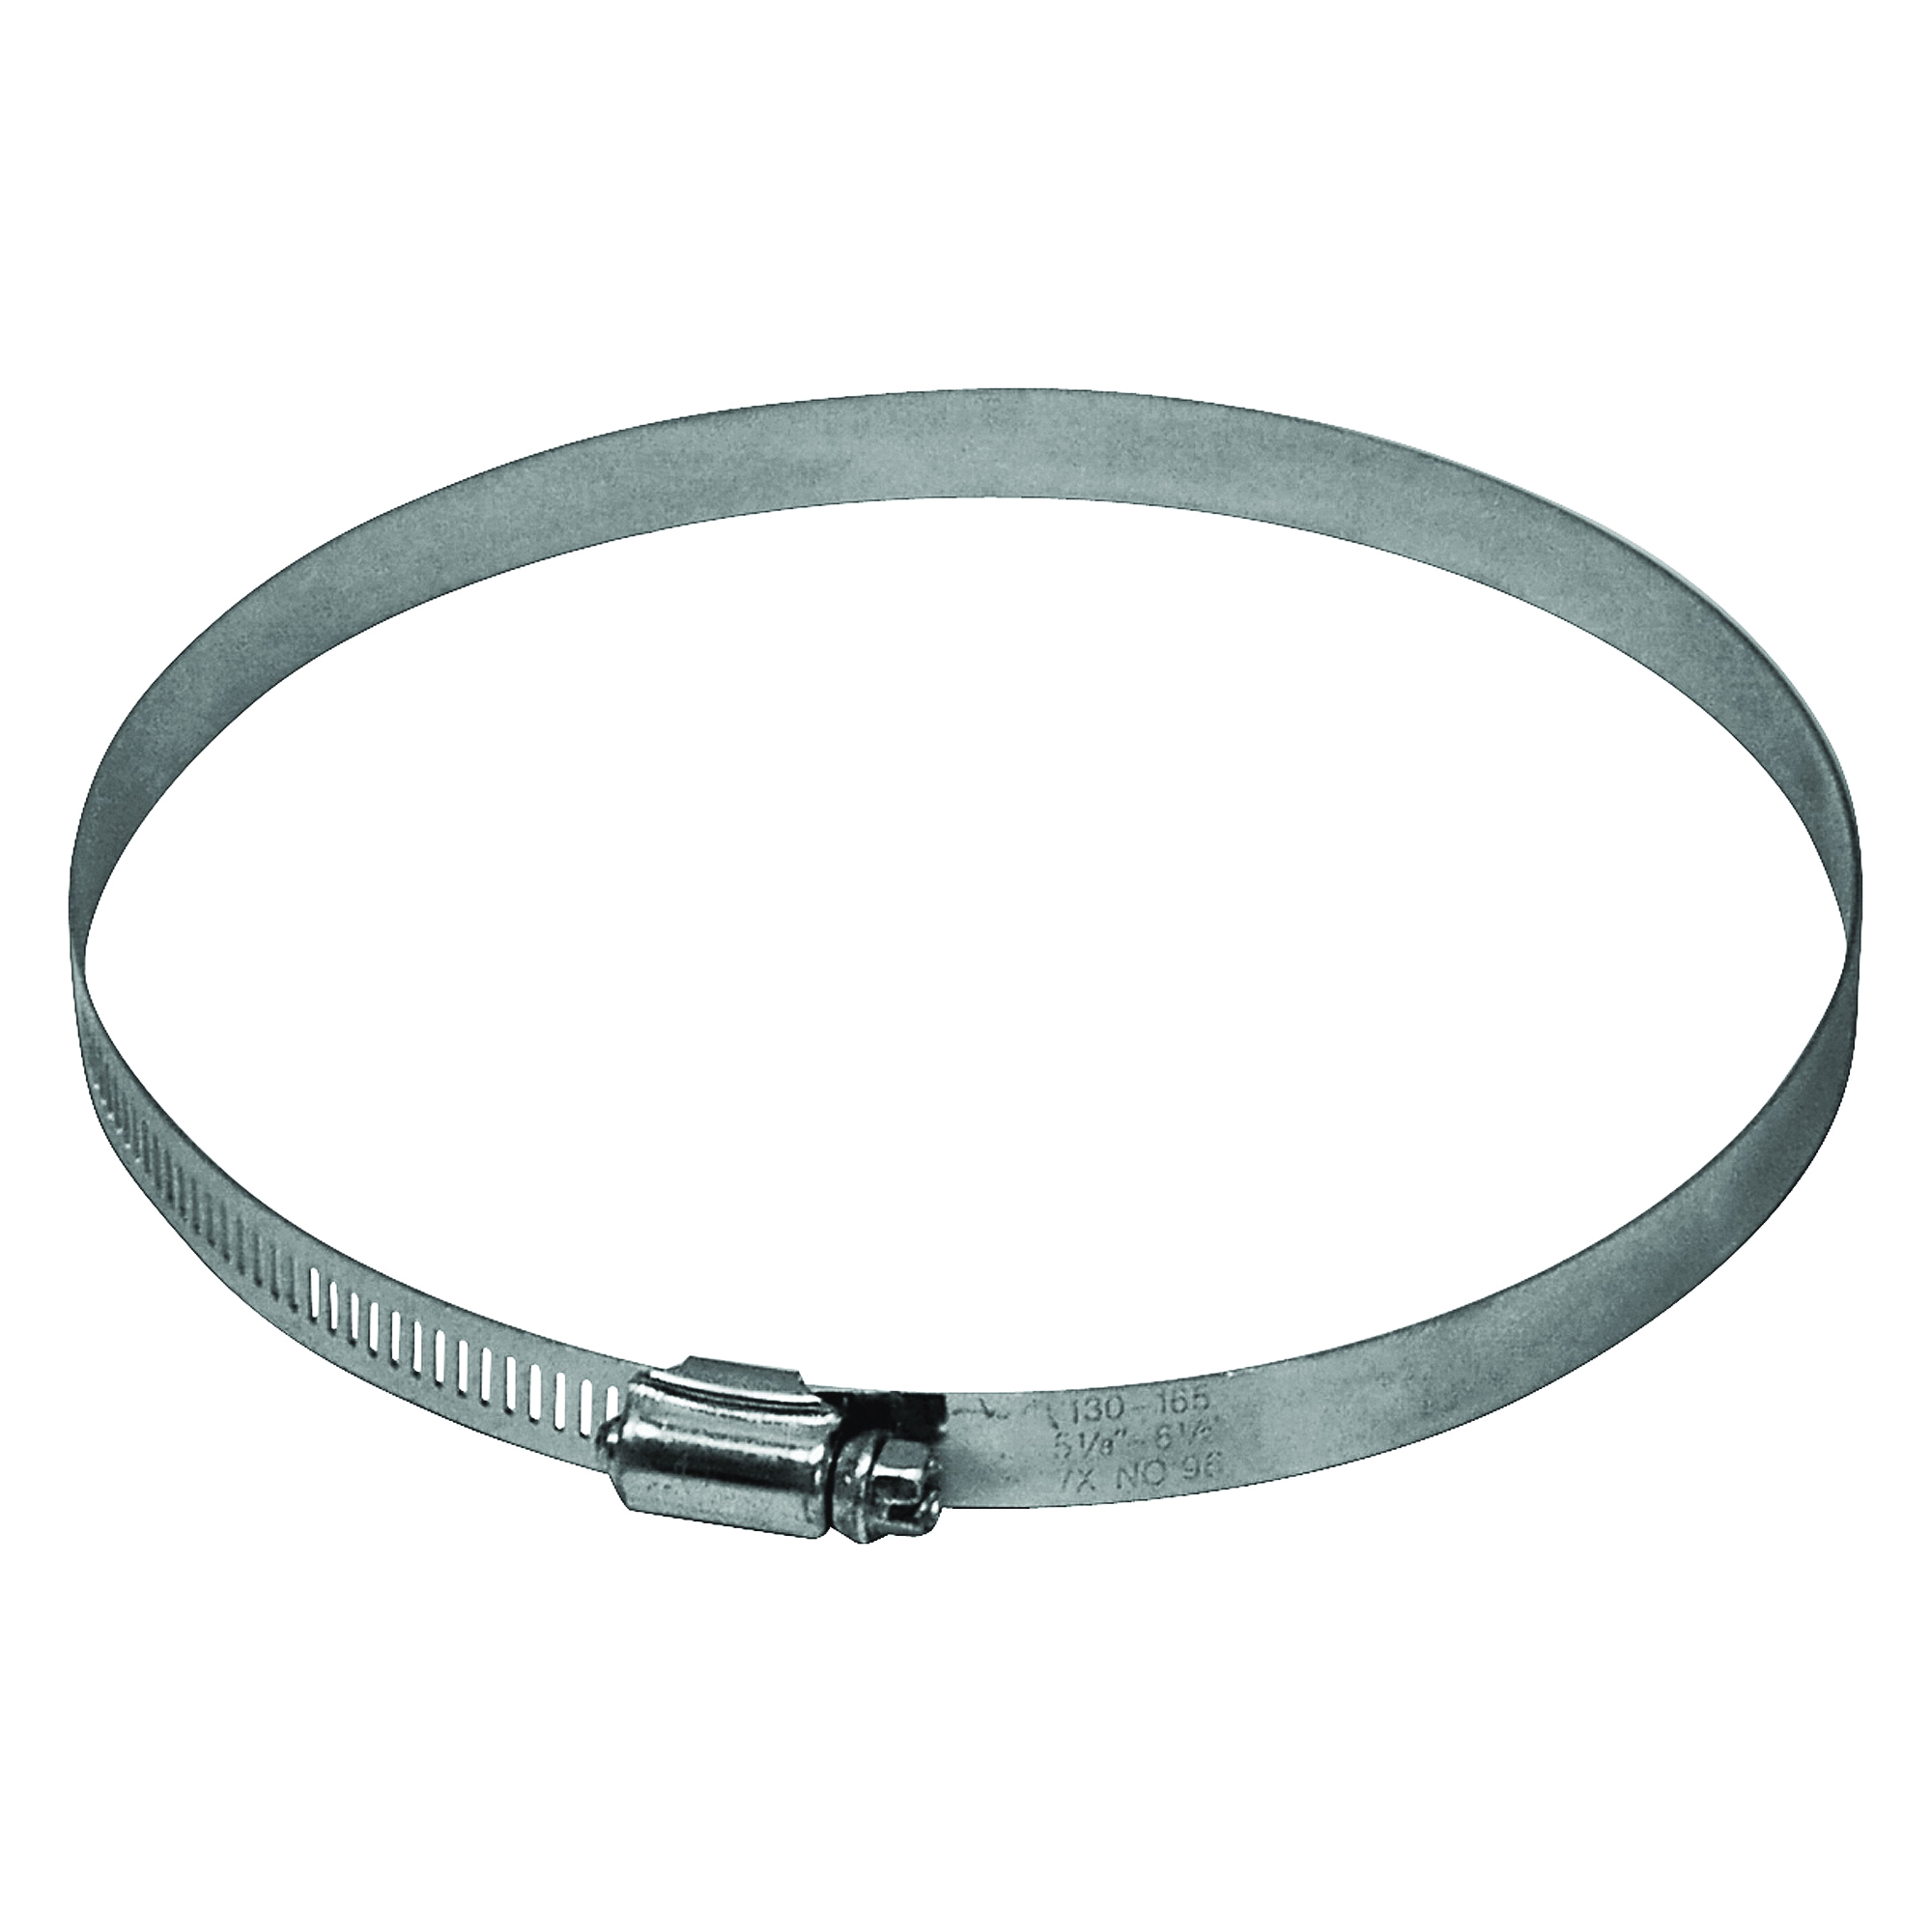 Picture of Lambro 283 Worm Gear Clamp, 3 in Duct, Clamping Range: 2-9/16 to 3-1/2 in, Steel, Zinc